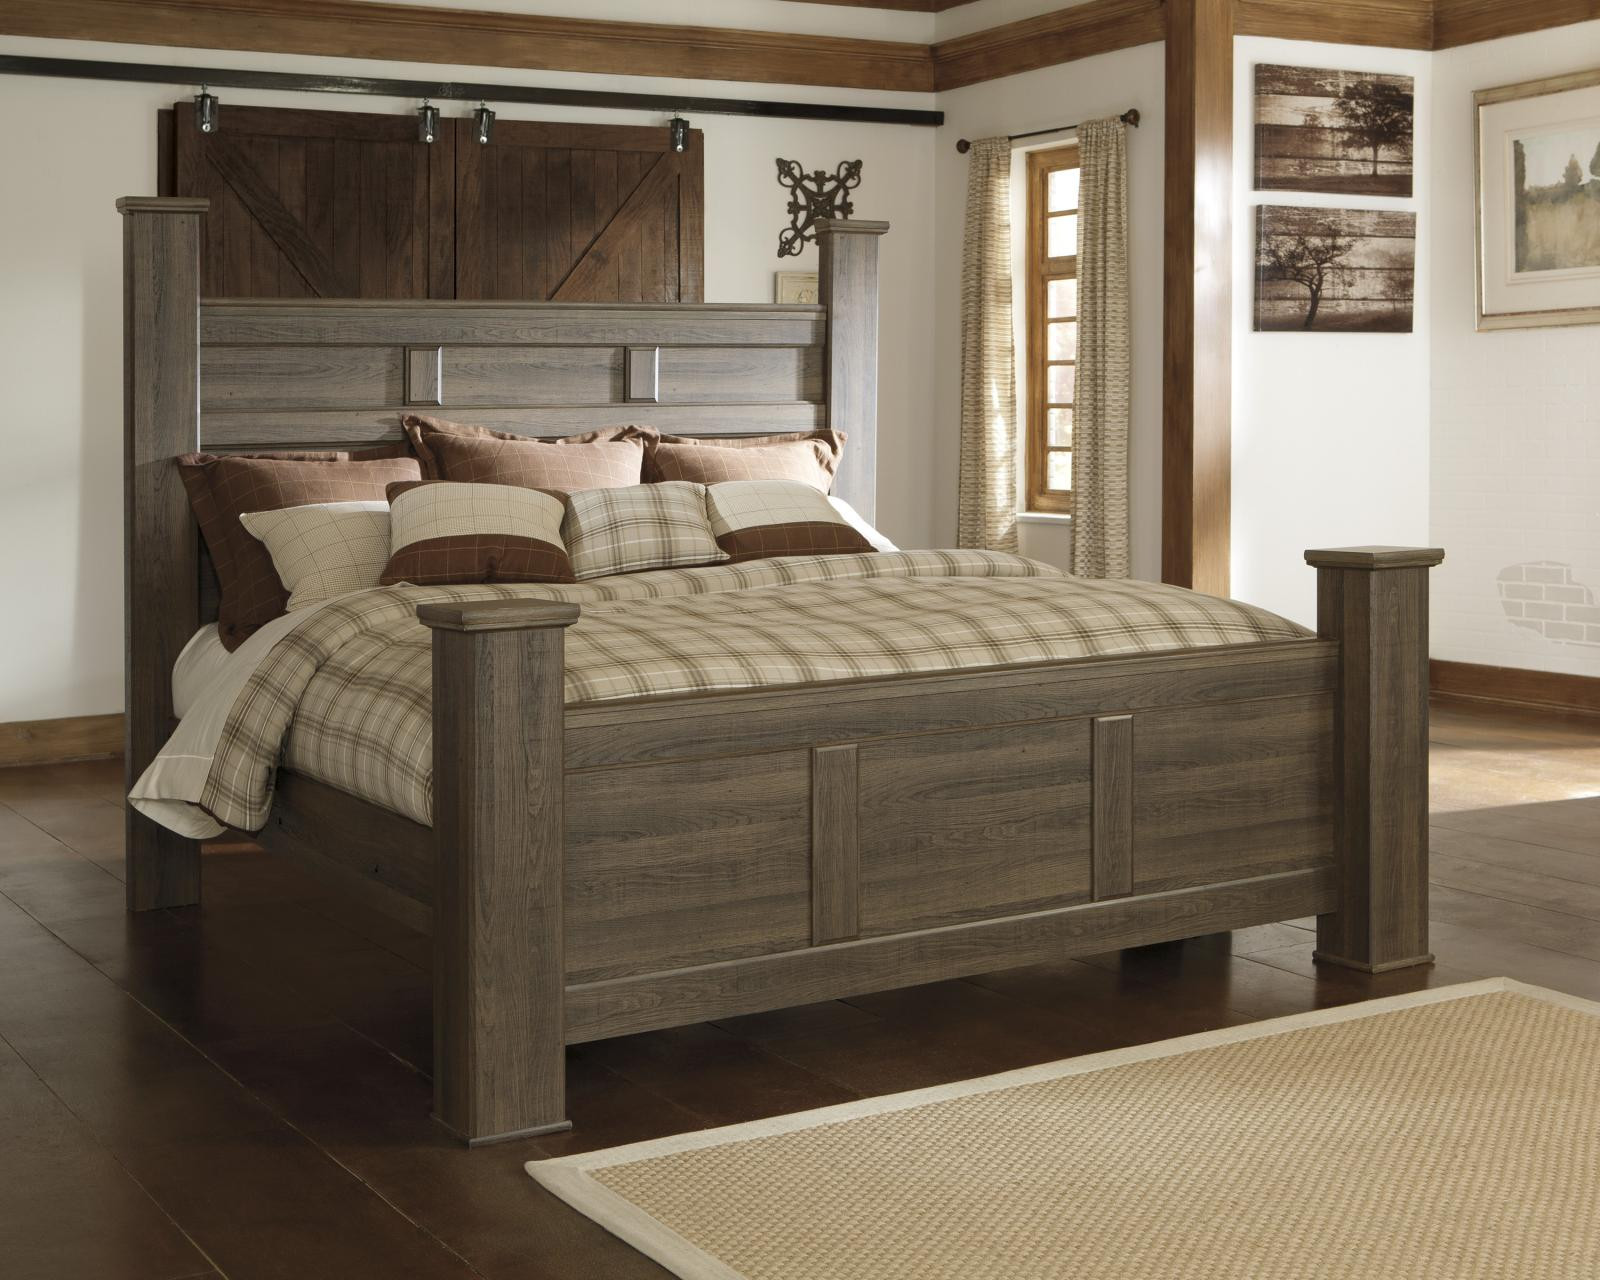 Best ideas about King Size Bedroom Sets . Save or Pin Ashley Juararo B251 King Size Poster Bedroom Set 2 Night Now.